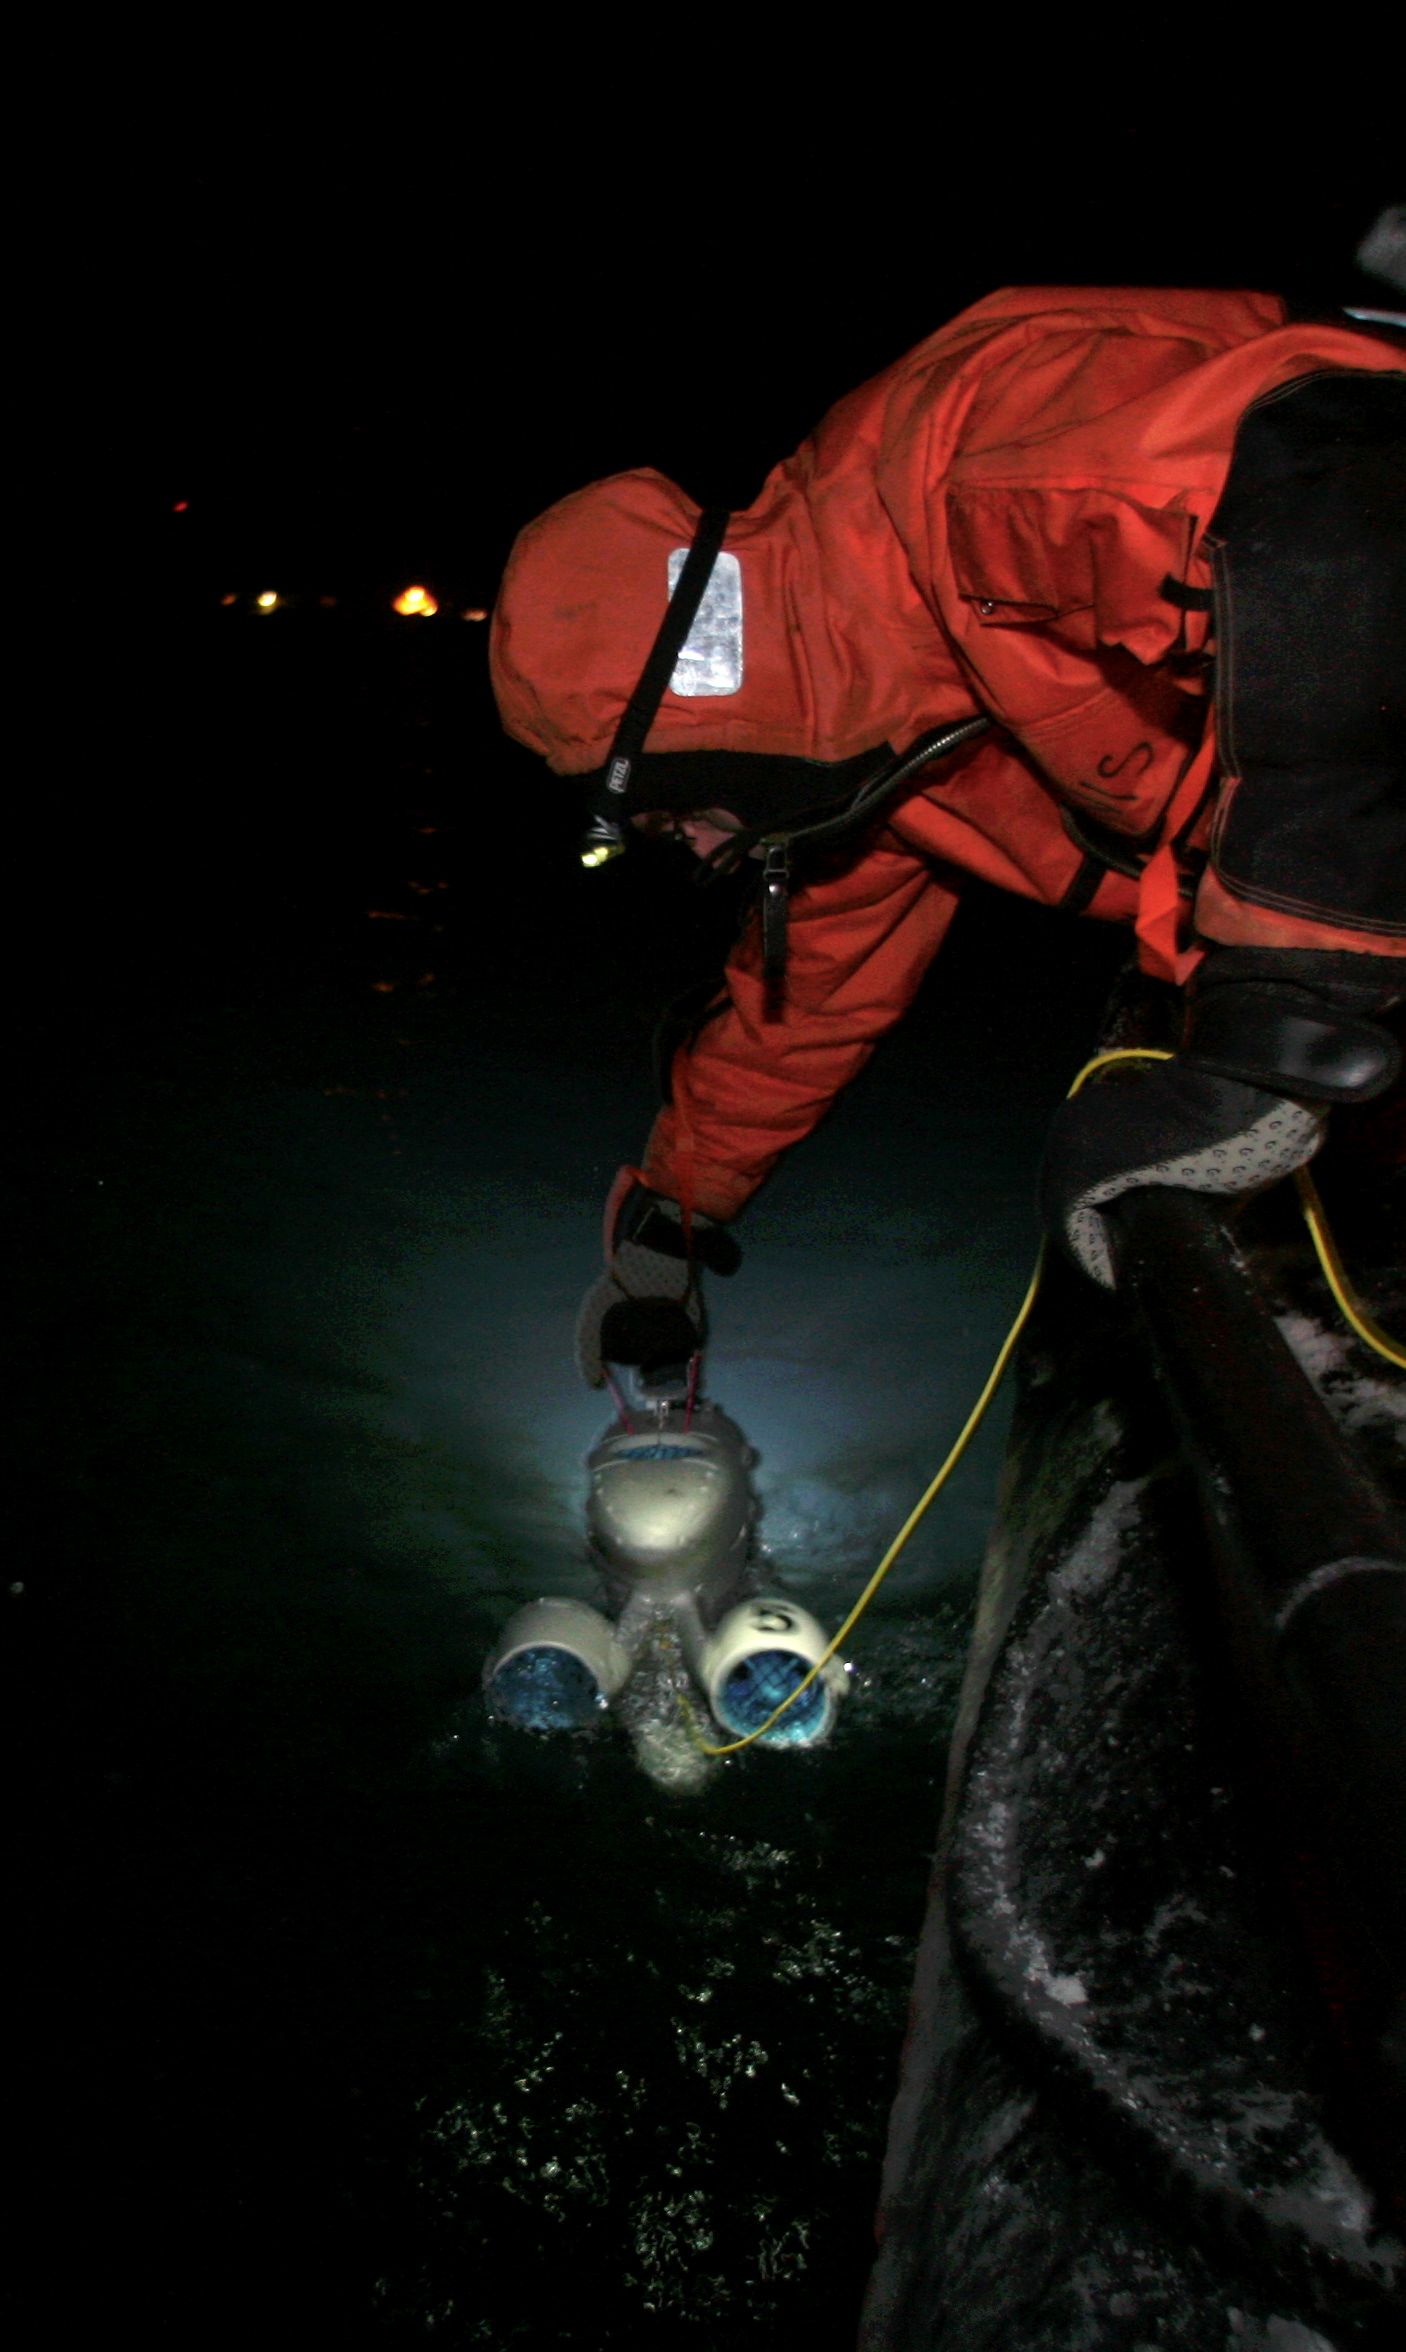 New technology is tested to study life in icy waters in the polar night. This robot, Blueye, is able to operate down to a depth of 100 metres and register even miniscule organisms. Photo: Ole Magnus Rapp